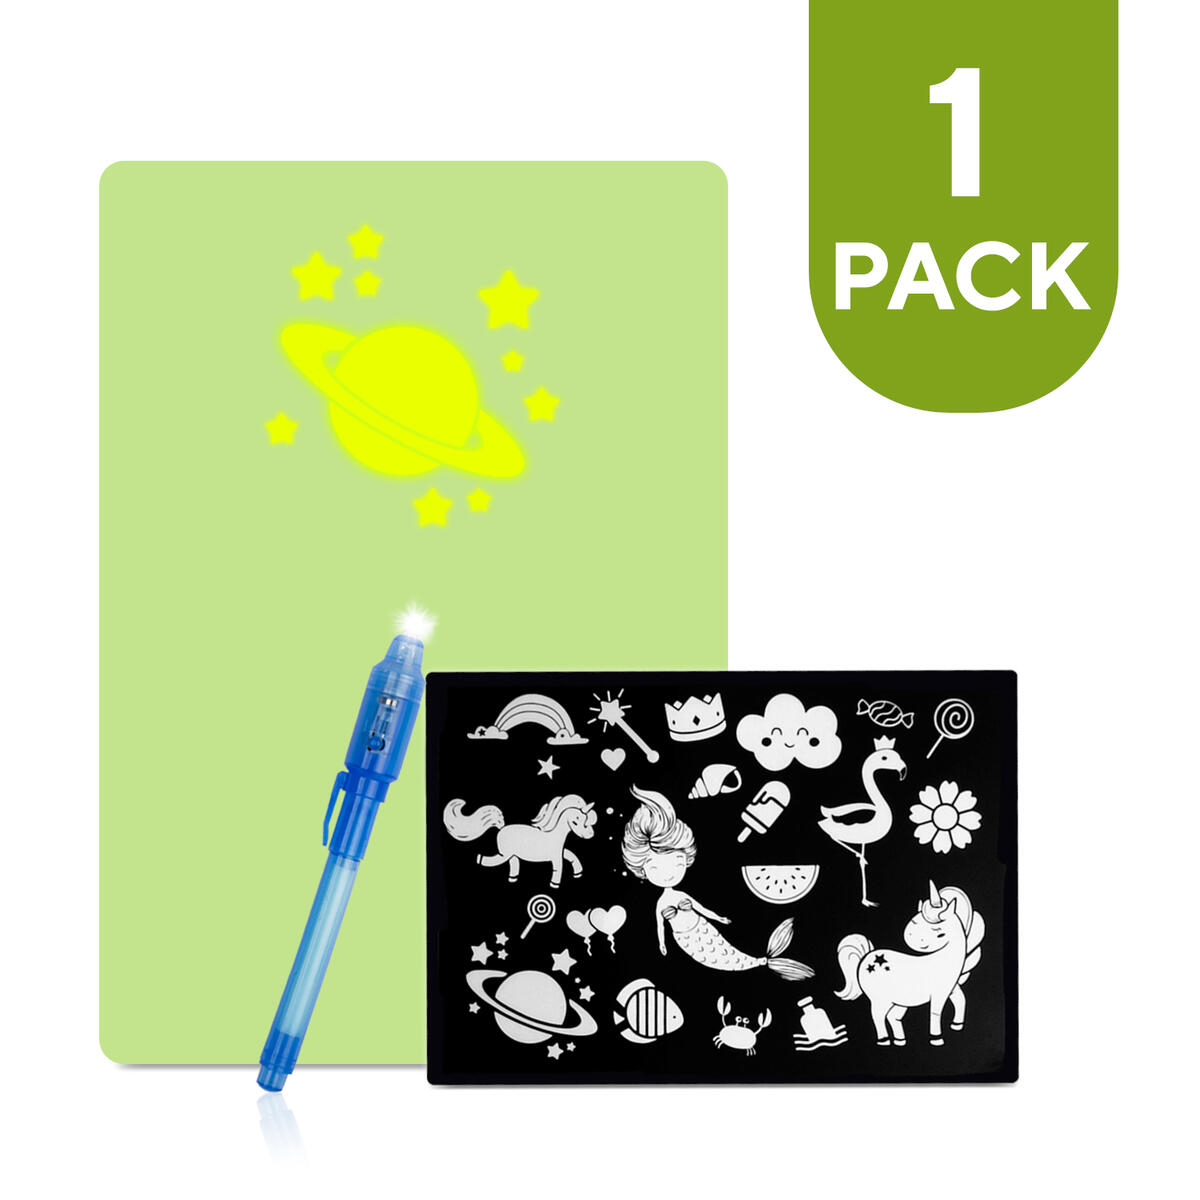 Allessimo Lunar Draw - Magic Light Artist Board, Pack of 1, Double Sided Lunar Draw Drawing Board + 2 Pages of Fun Stencils Writing sketch pad for kids